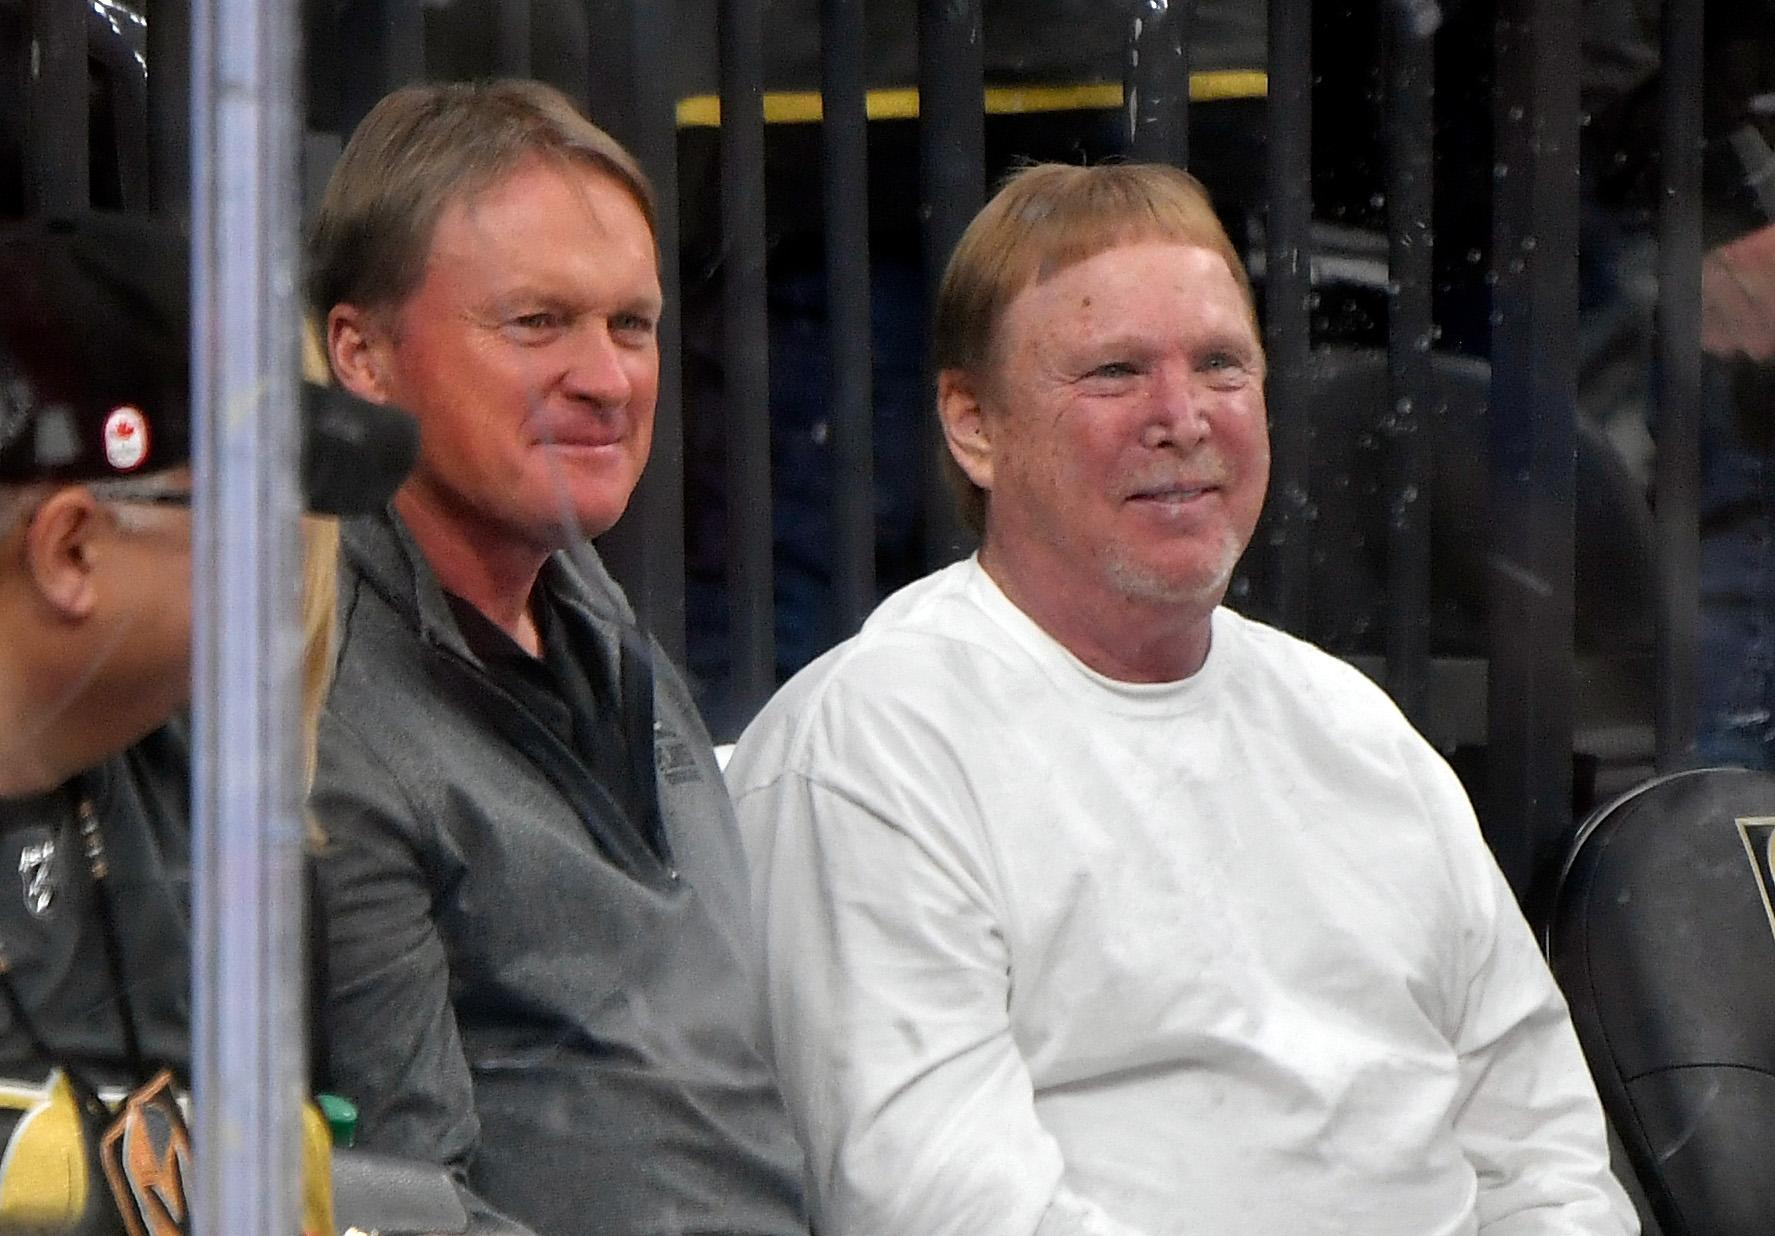 Raiders owner Mark Davis says NFL's punishment for repeated COVID-19 violations is 'draconian'